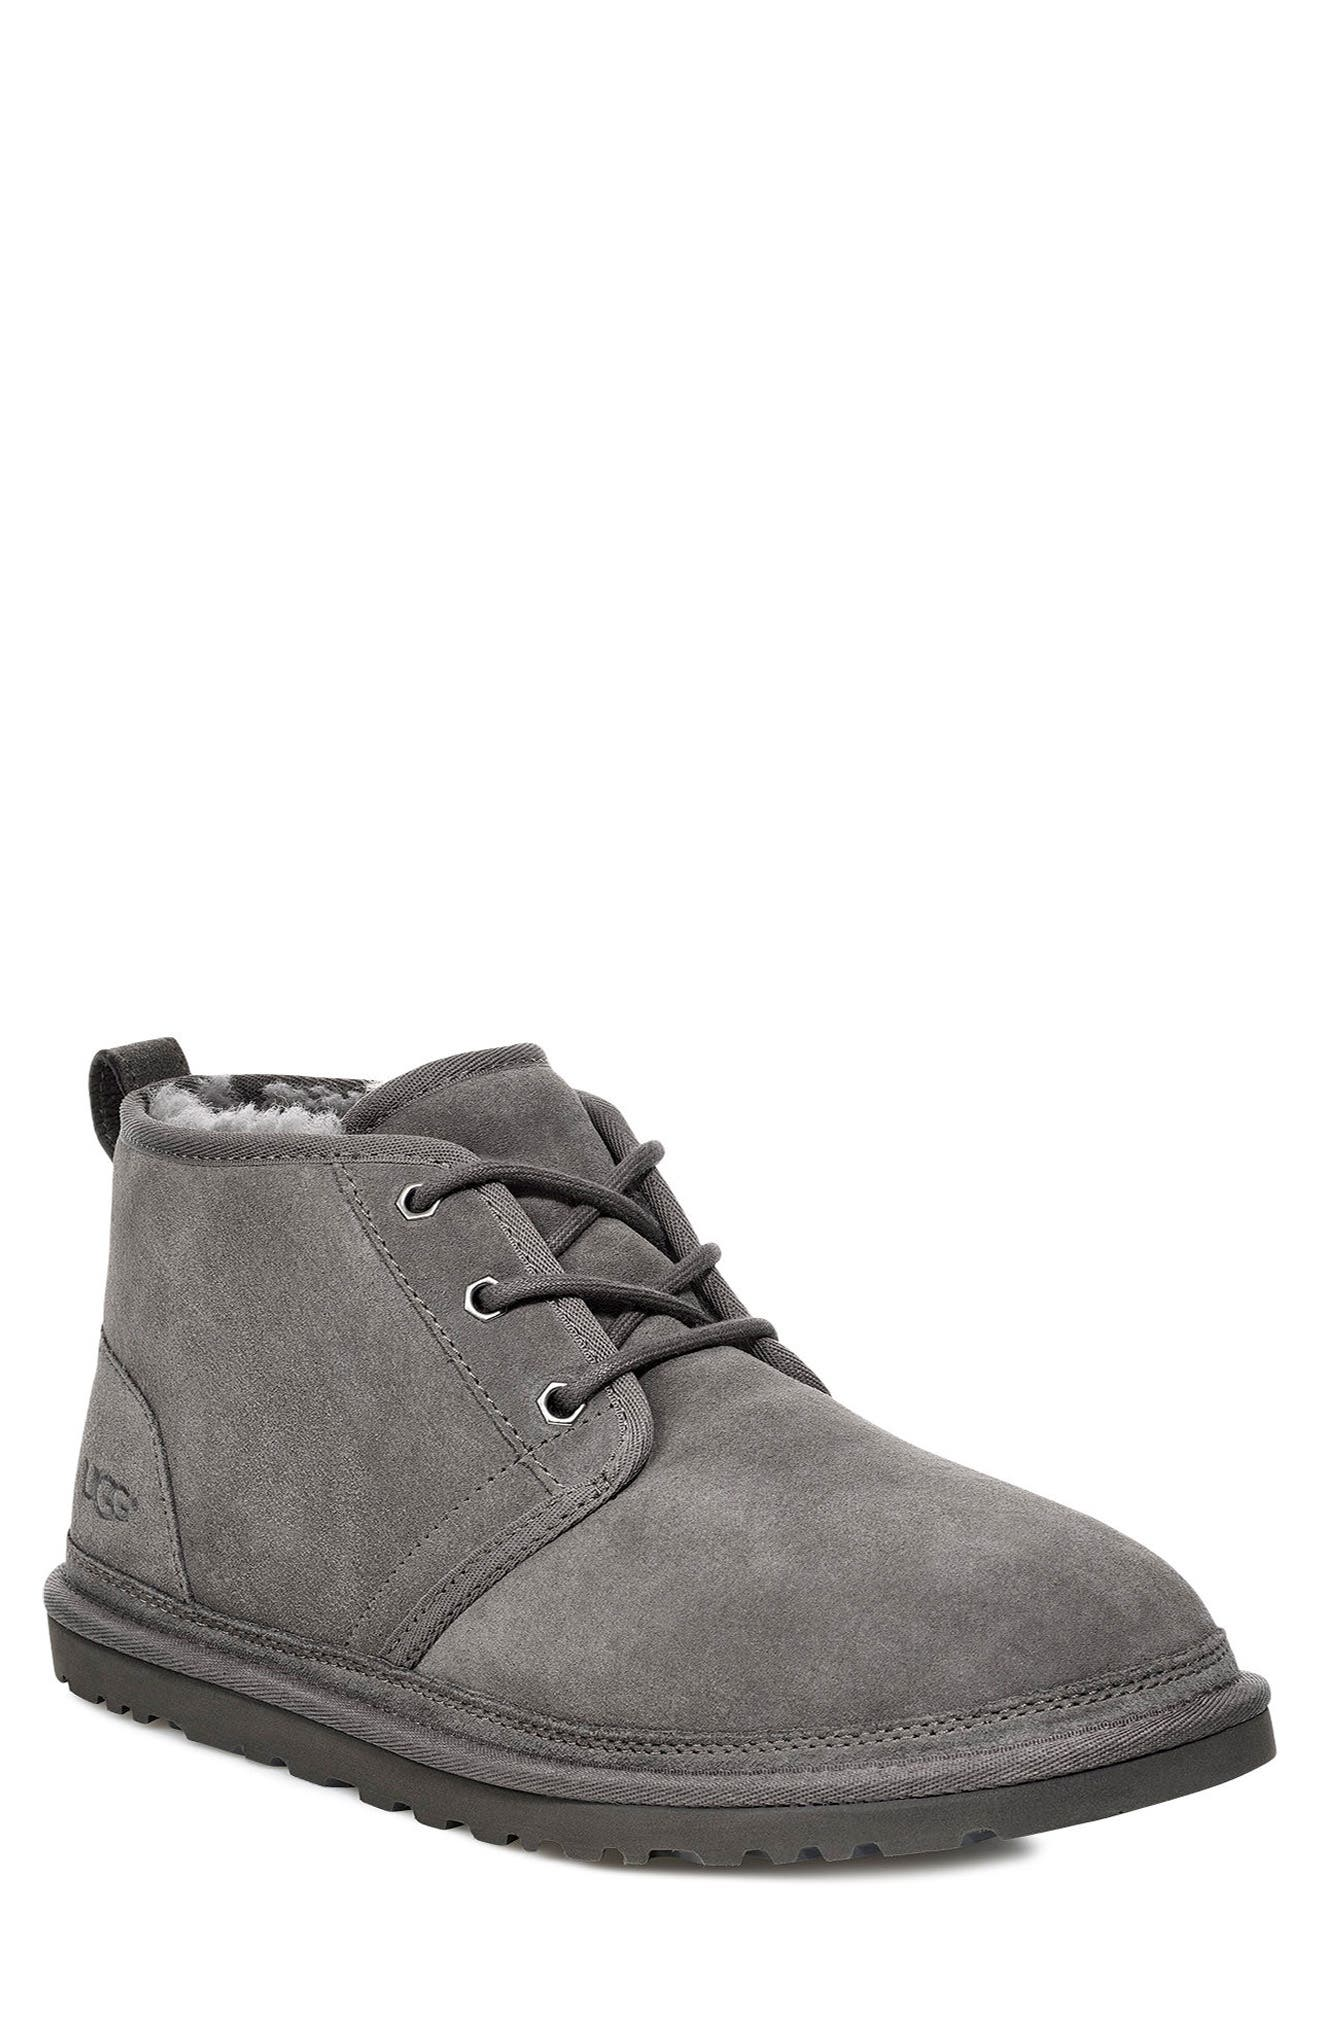 Neumel Chukka Boot,                             Main thumbnail 1, color,                             CHARCOAL SUEDE